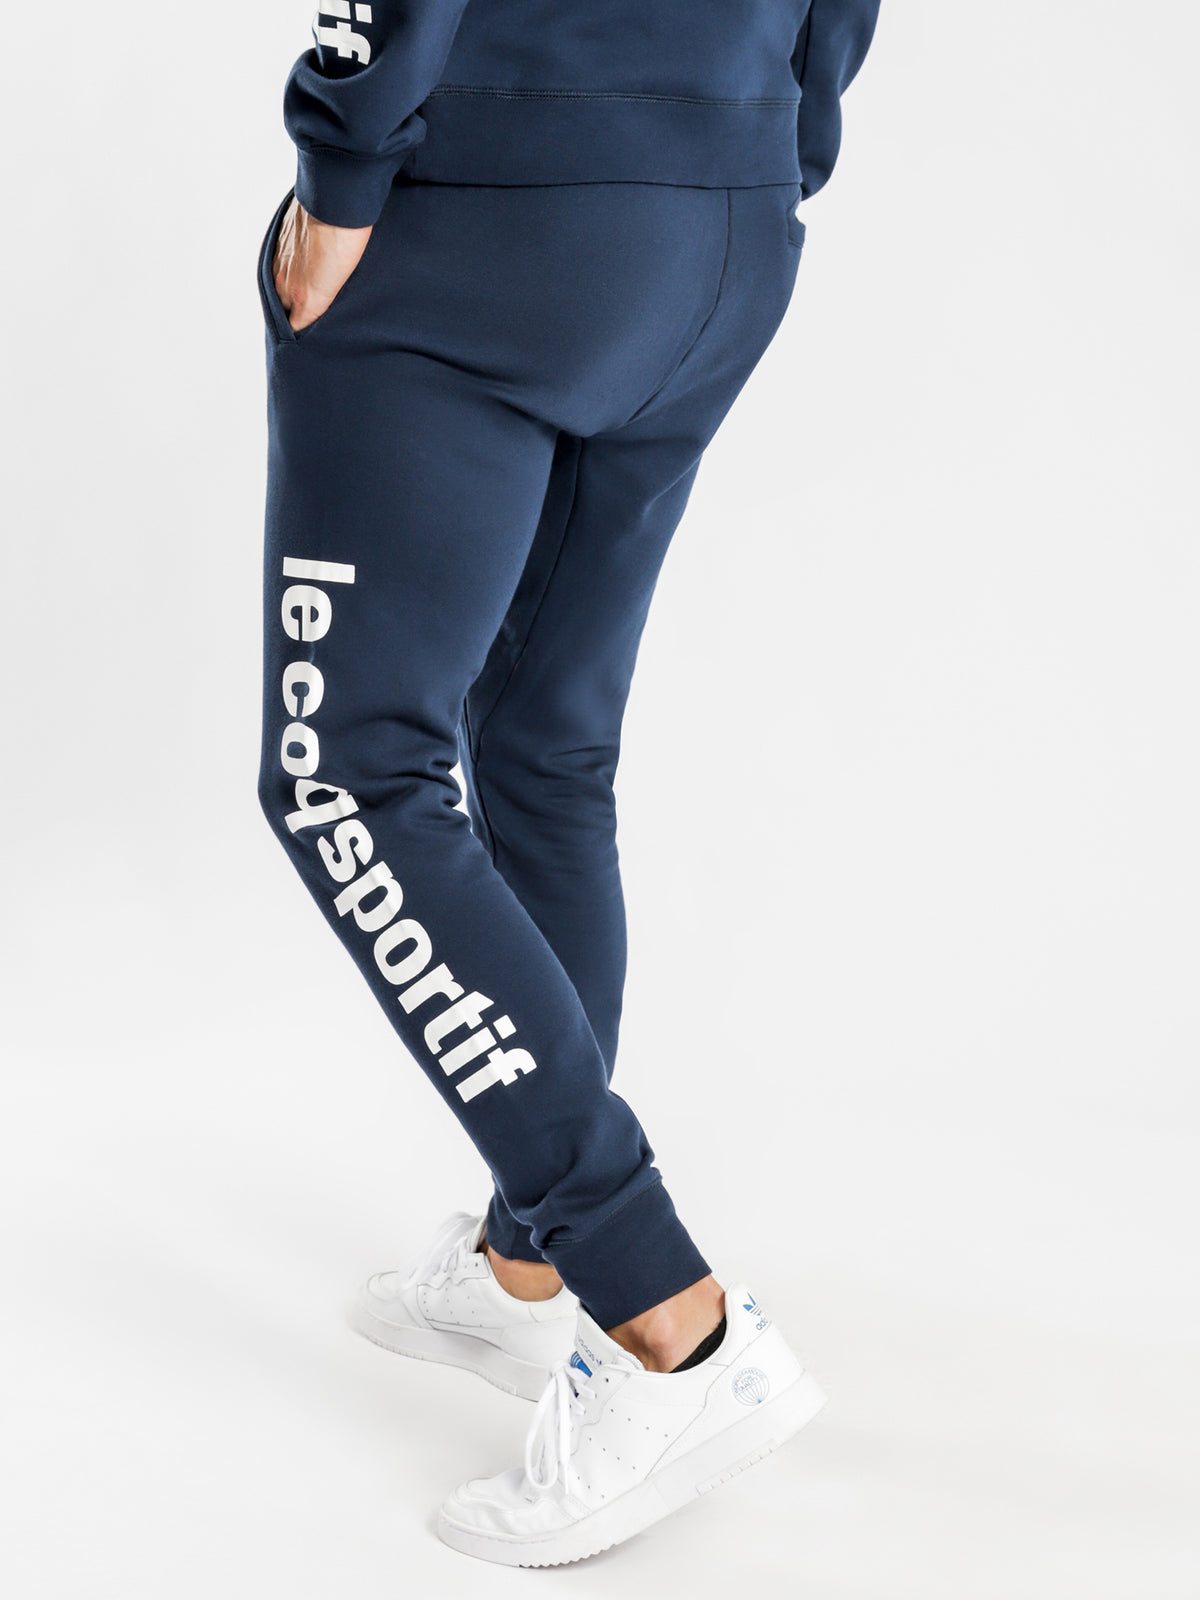 Pierre Track Pants in Navy Blue